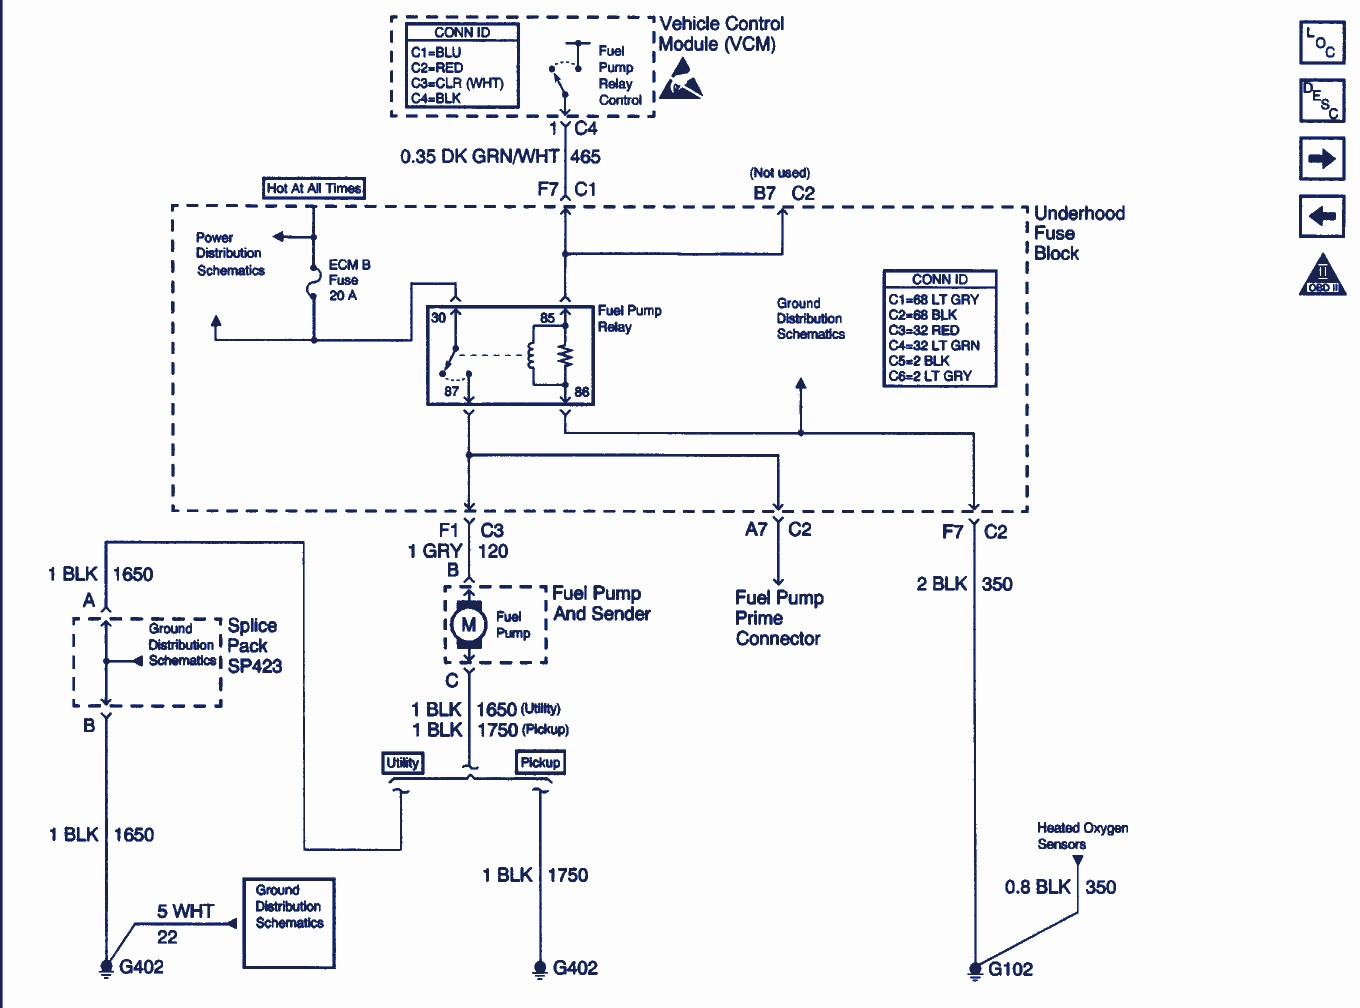 hight resolution of 2002 tahoe fuel pump wiring diagram simple wiring schema 2001 suburban 2001 tahoe fuel schematic